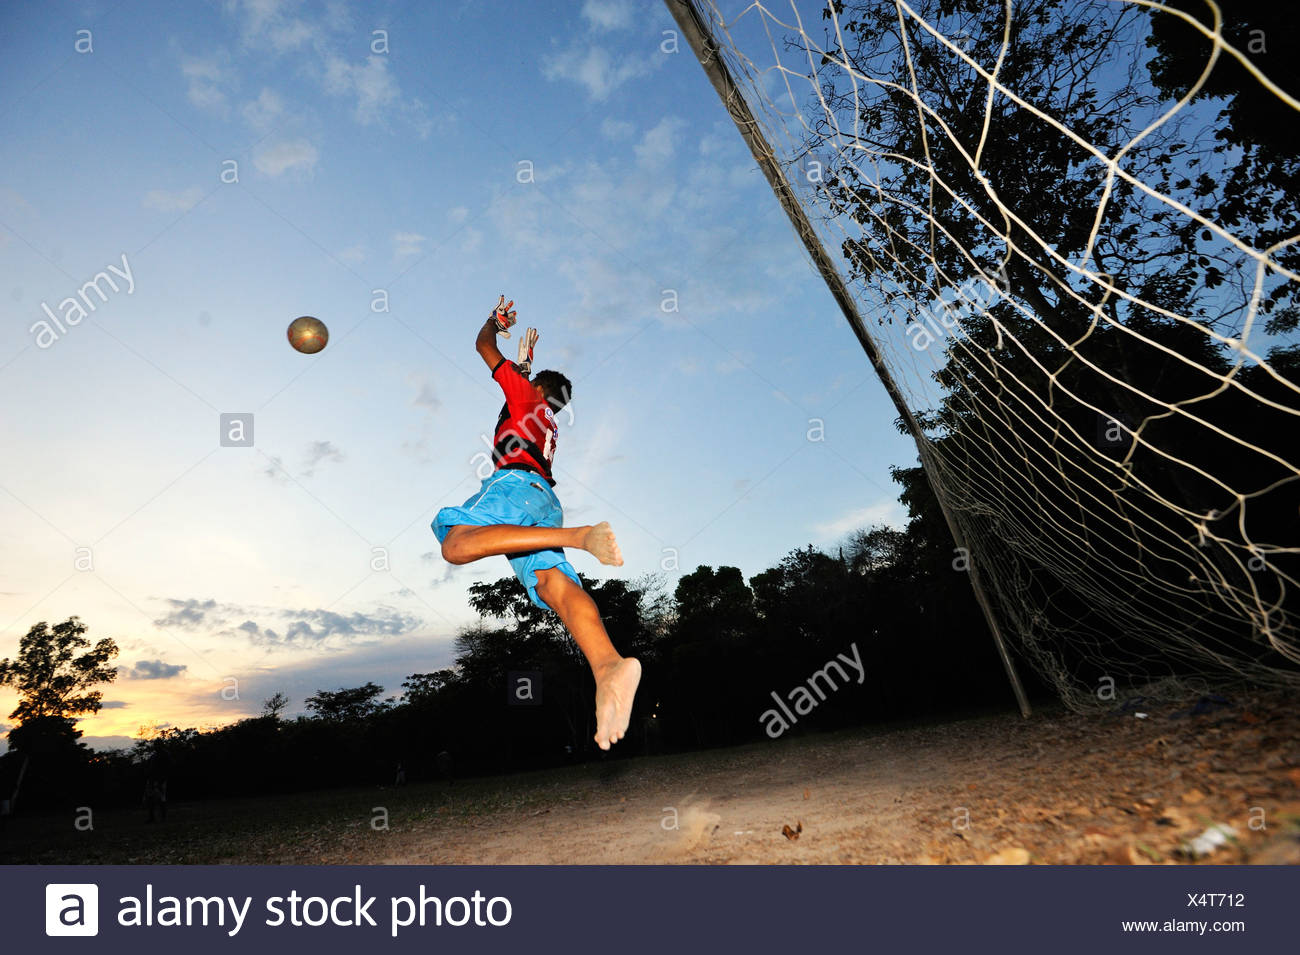 Goalkeeper wearing the jersey of Flamengo football club on a pitch, Brazil, South America, Latin America - Stock Image